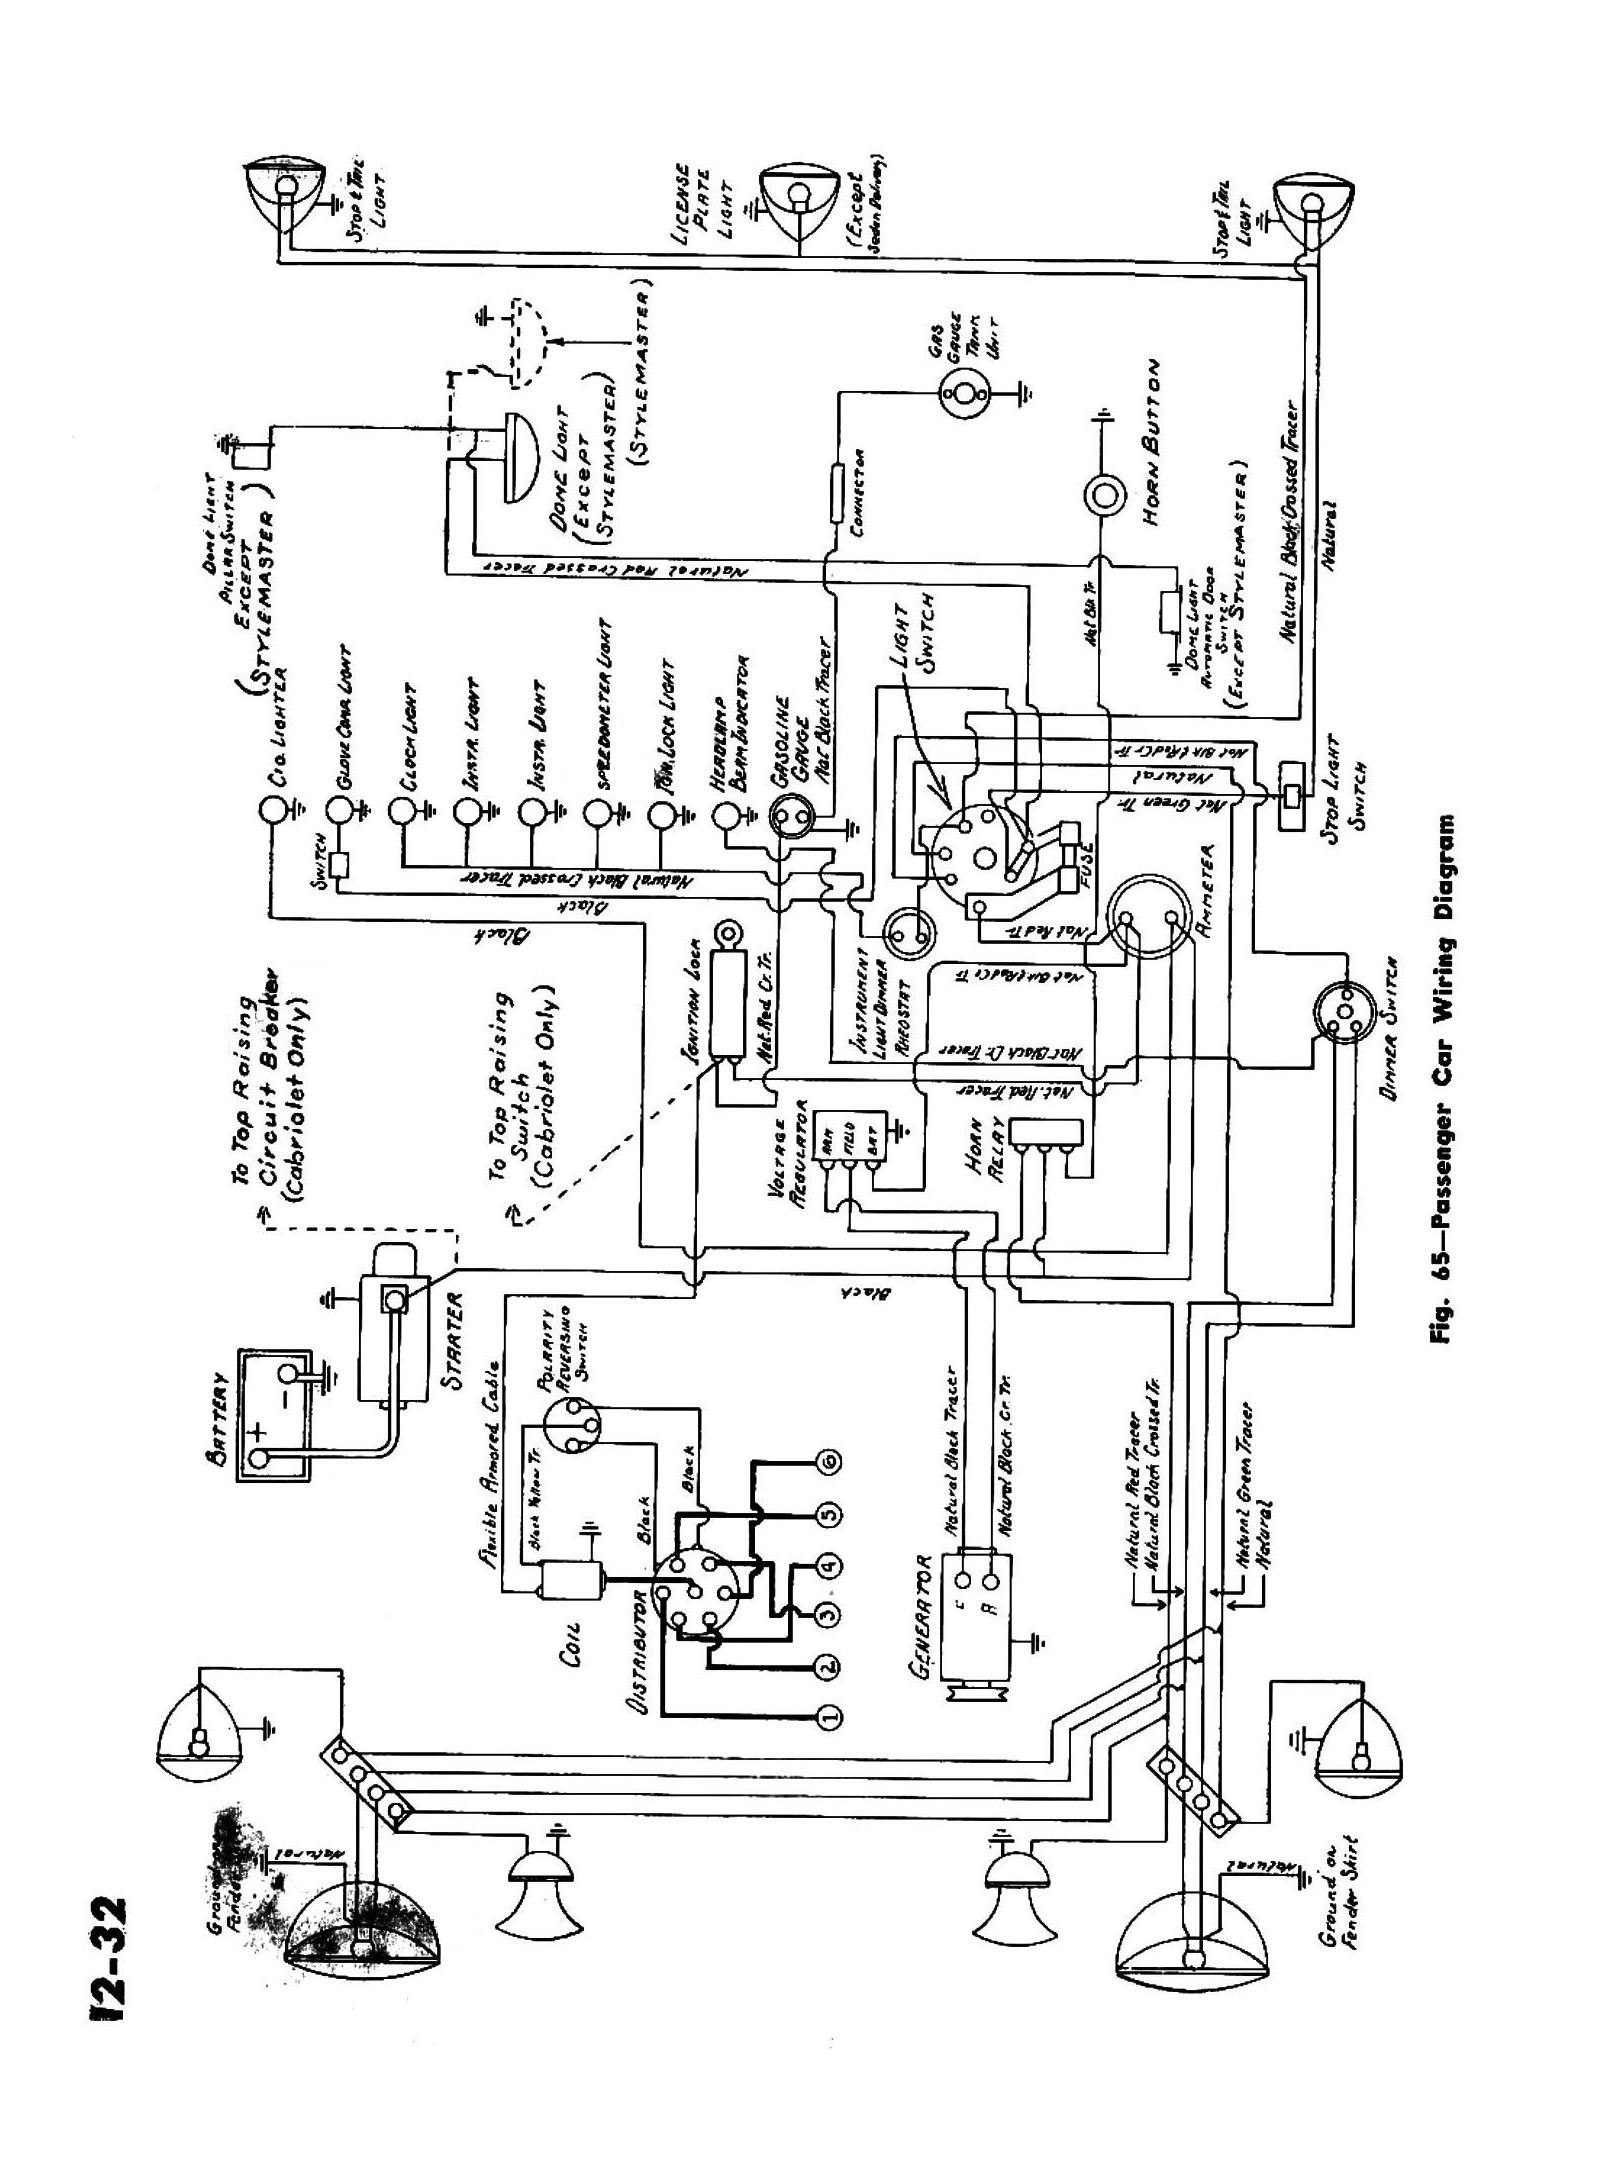 47 Ford Sedan Wiring Diagram Circuit Schematic Factory Colors Chevy Diagrams 1996 Ranger 1947 Car Passenger